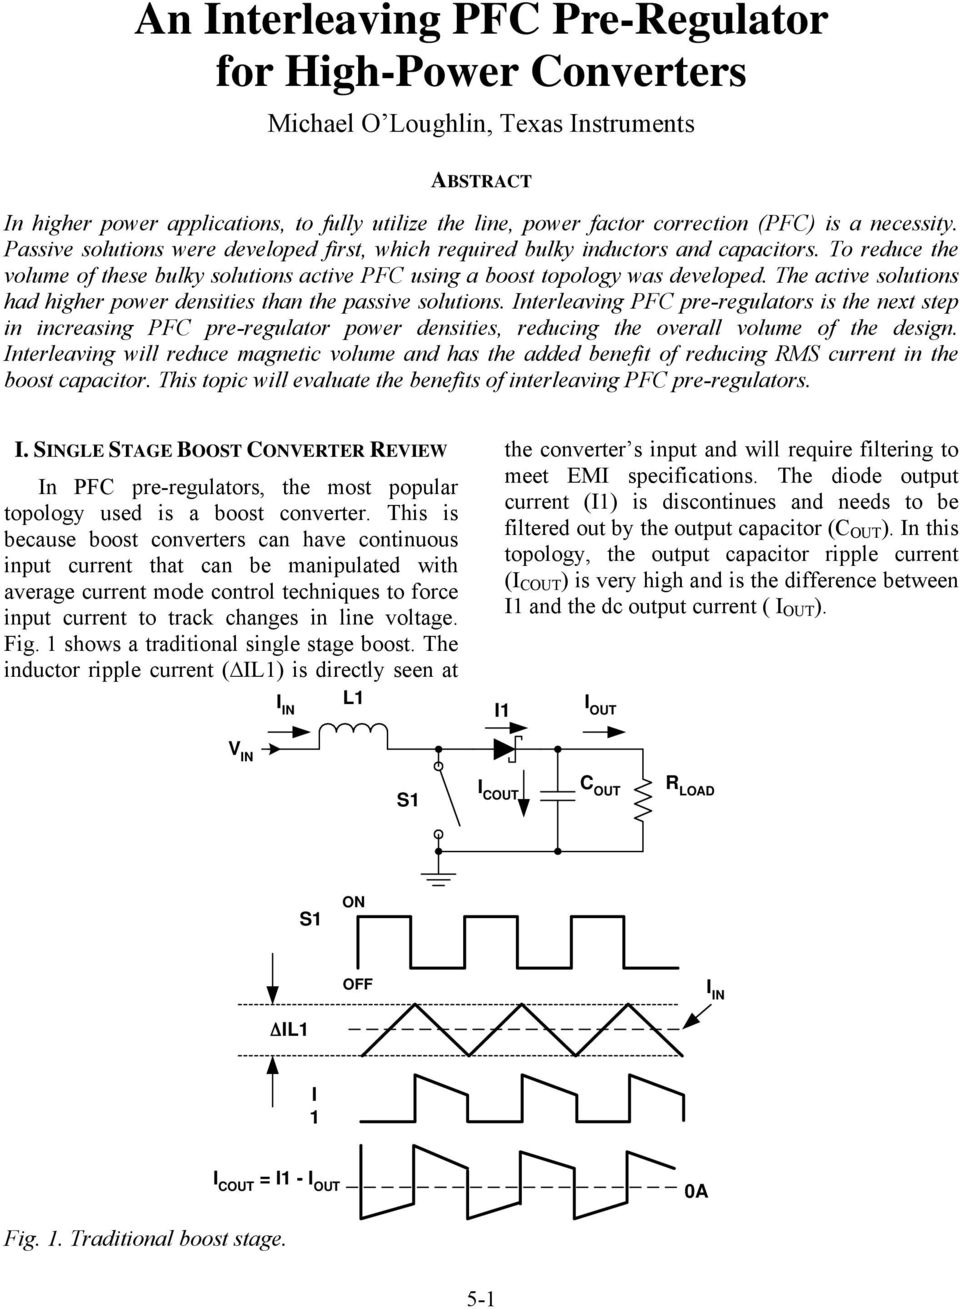 Topic 5 An Interleaved Pfc Preregulator For High Power Converters Pdf Converter Operation Frequency Ripple Reduction The Active Solutions Had Higher Densities Than Passive